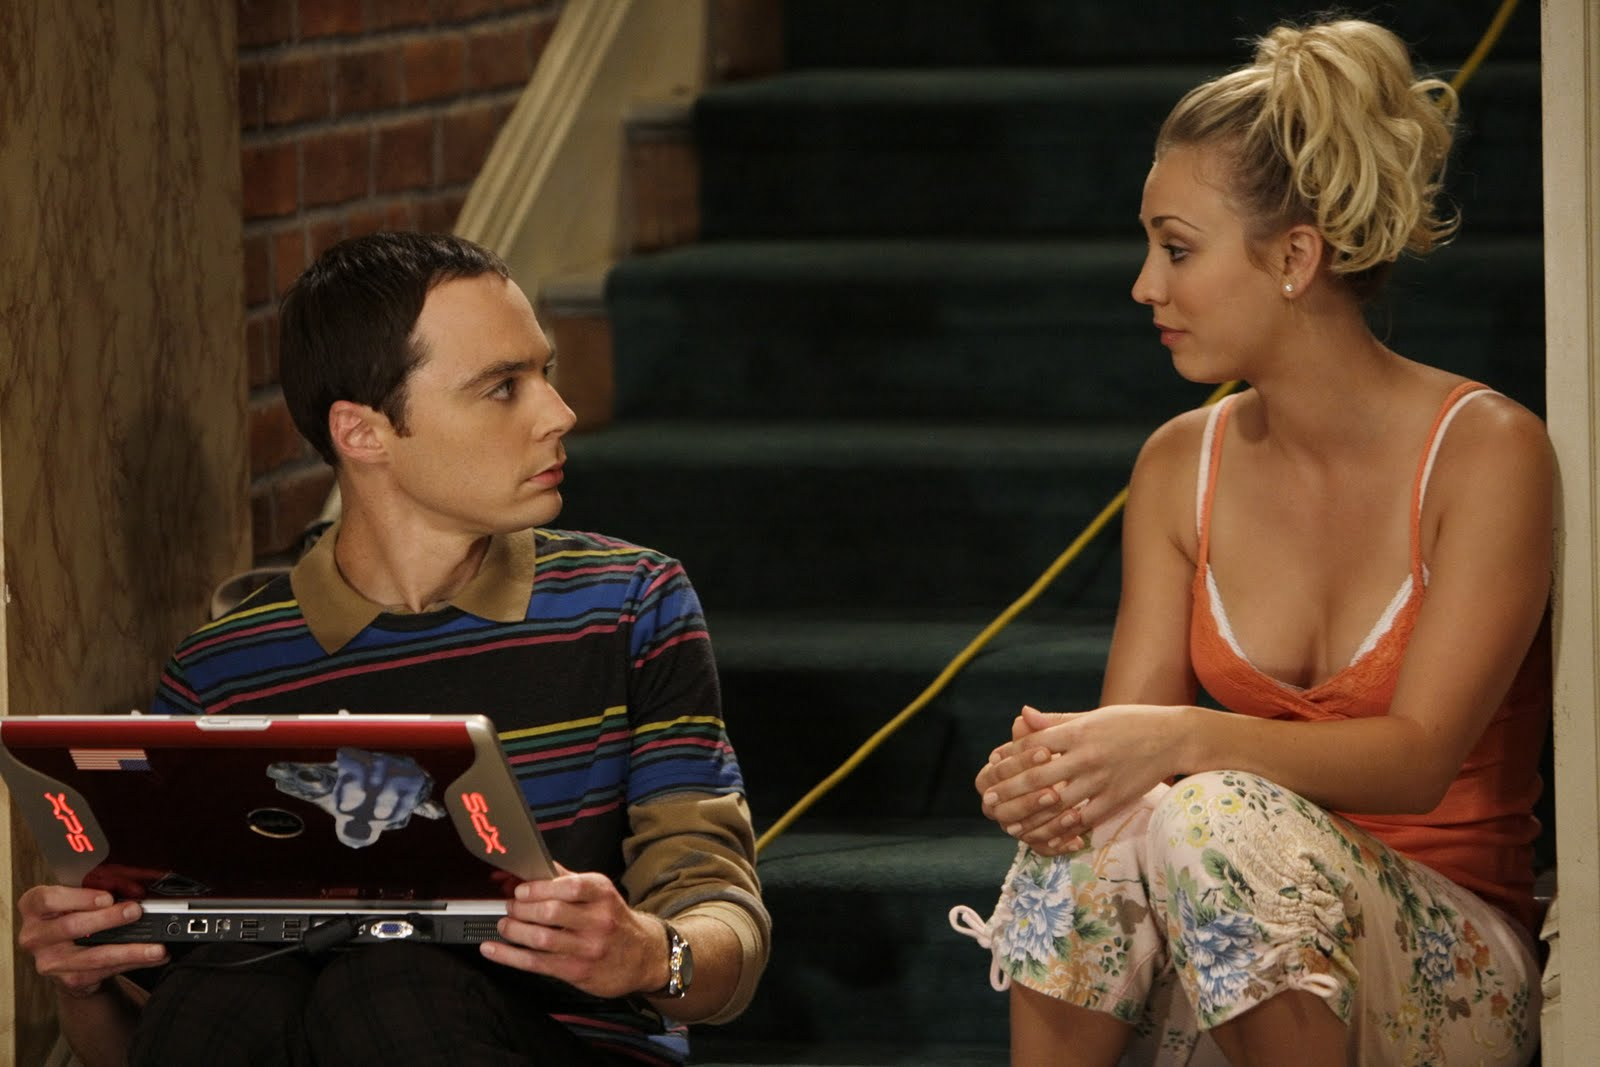 chatting up chicks.. courtesy of the Big Bang Theory